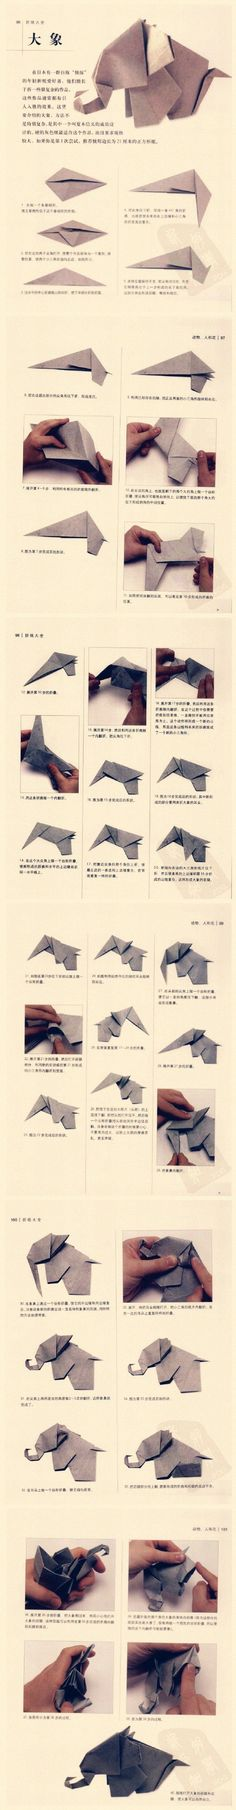 origami elephant-love this elephant, wish instructions were translated into English.